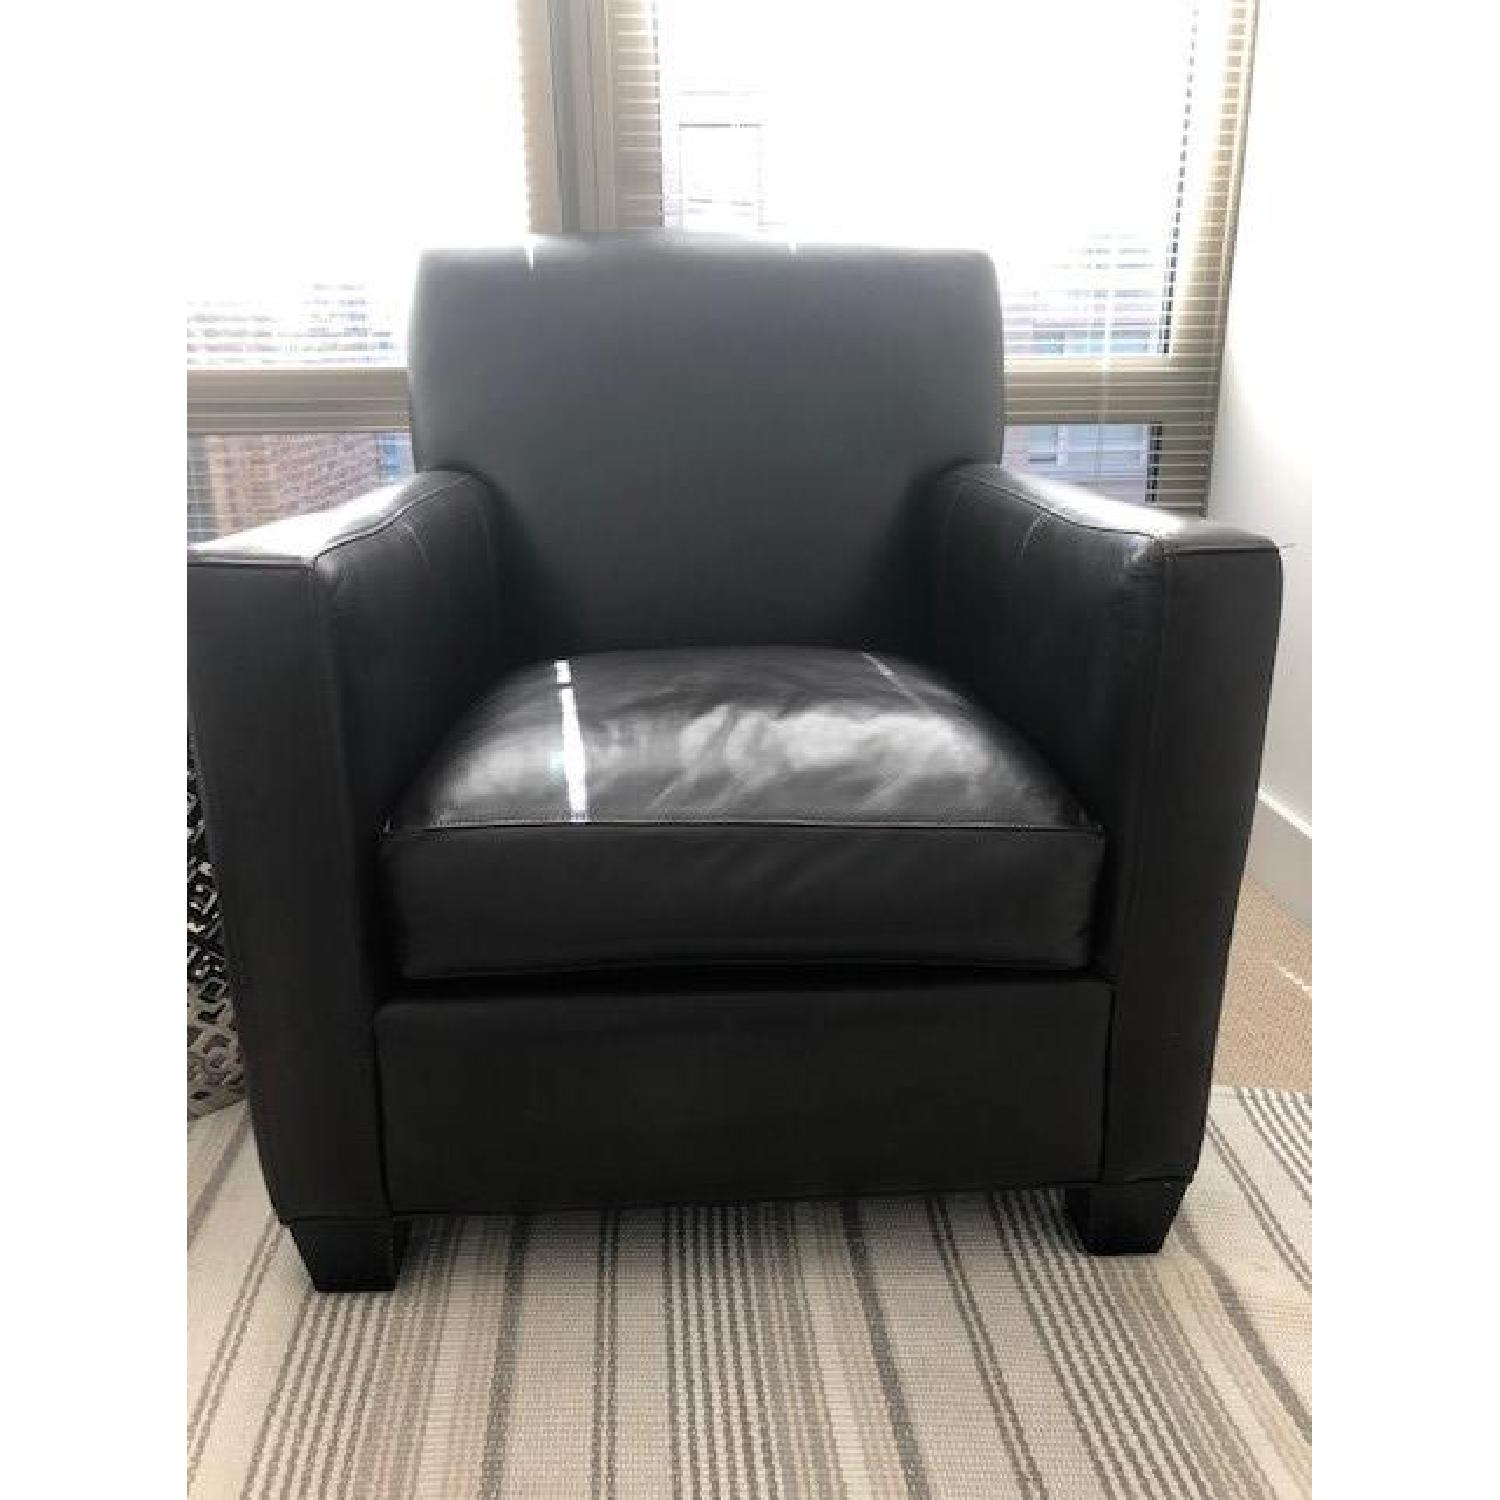 Crate & Barrel Leather Club Chair - image-1